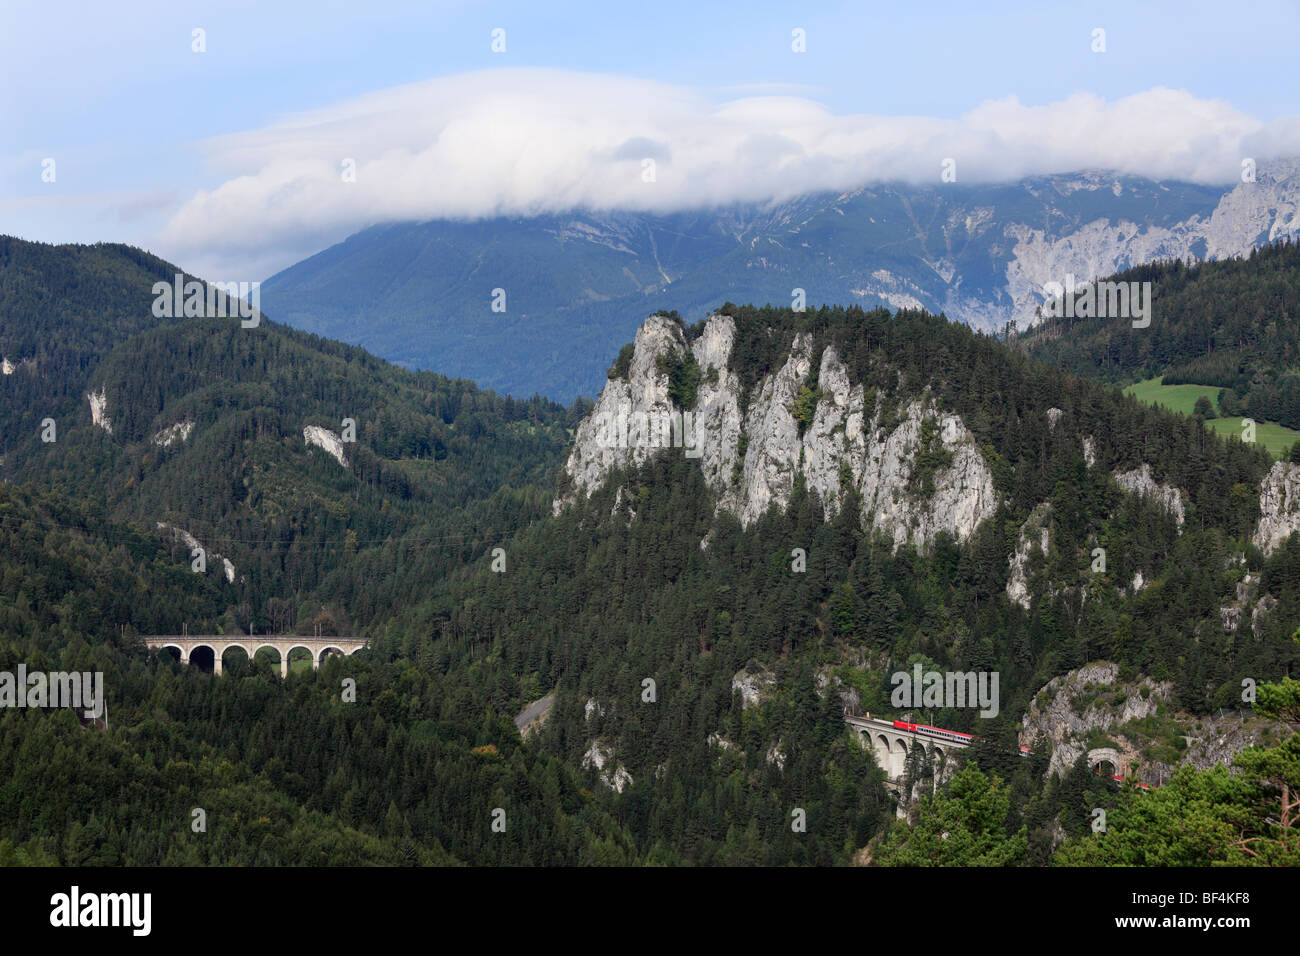 Semmering Railway, view from the 20-Schilling-Blick lookout, in the clouds, Rax Mountain, Semmering, Lower Austria, - Stock Image